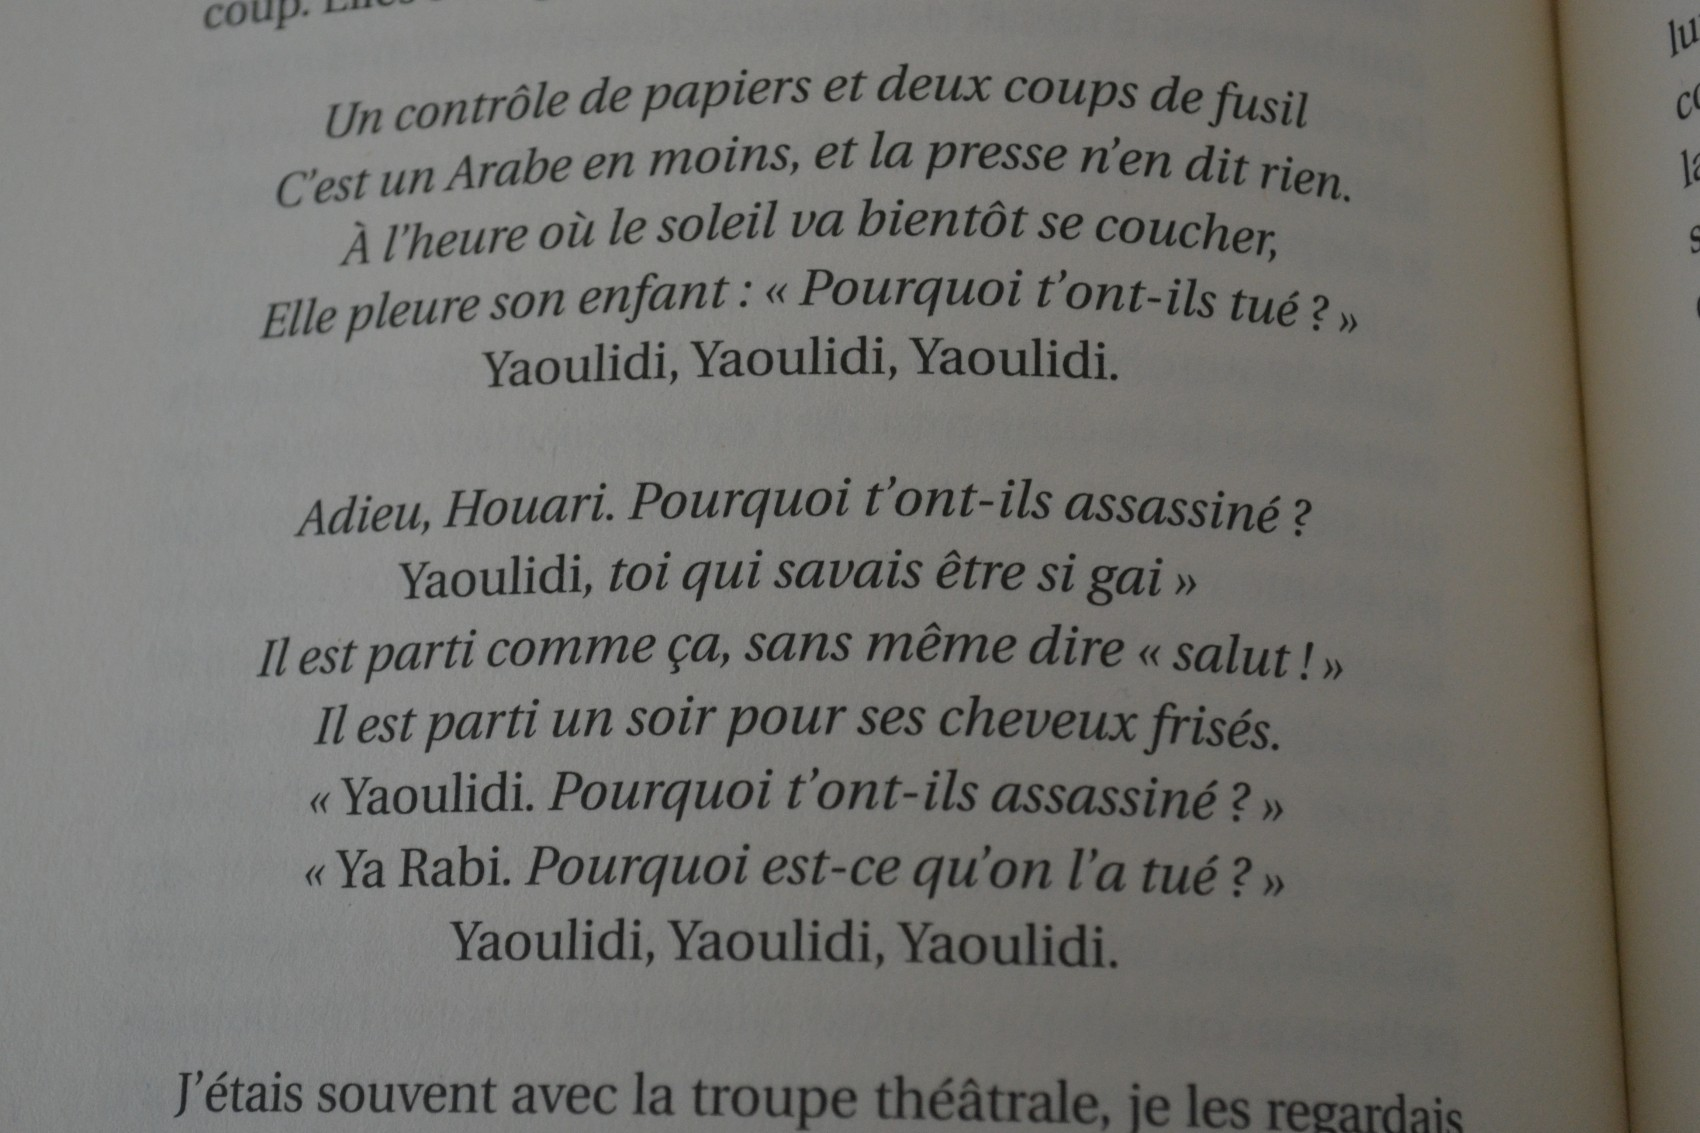 Paroles de la chanson Yaoulidi écrite par Mohamed Bouzidi. ©MD